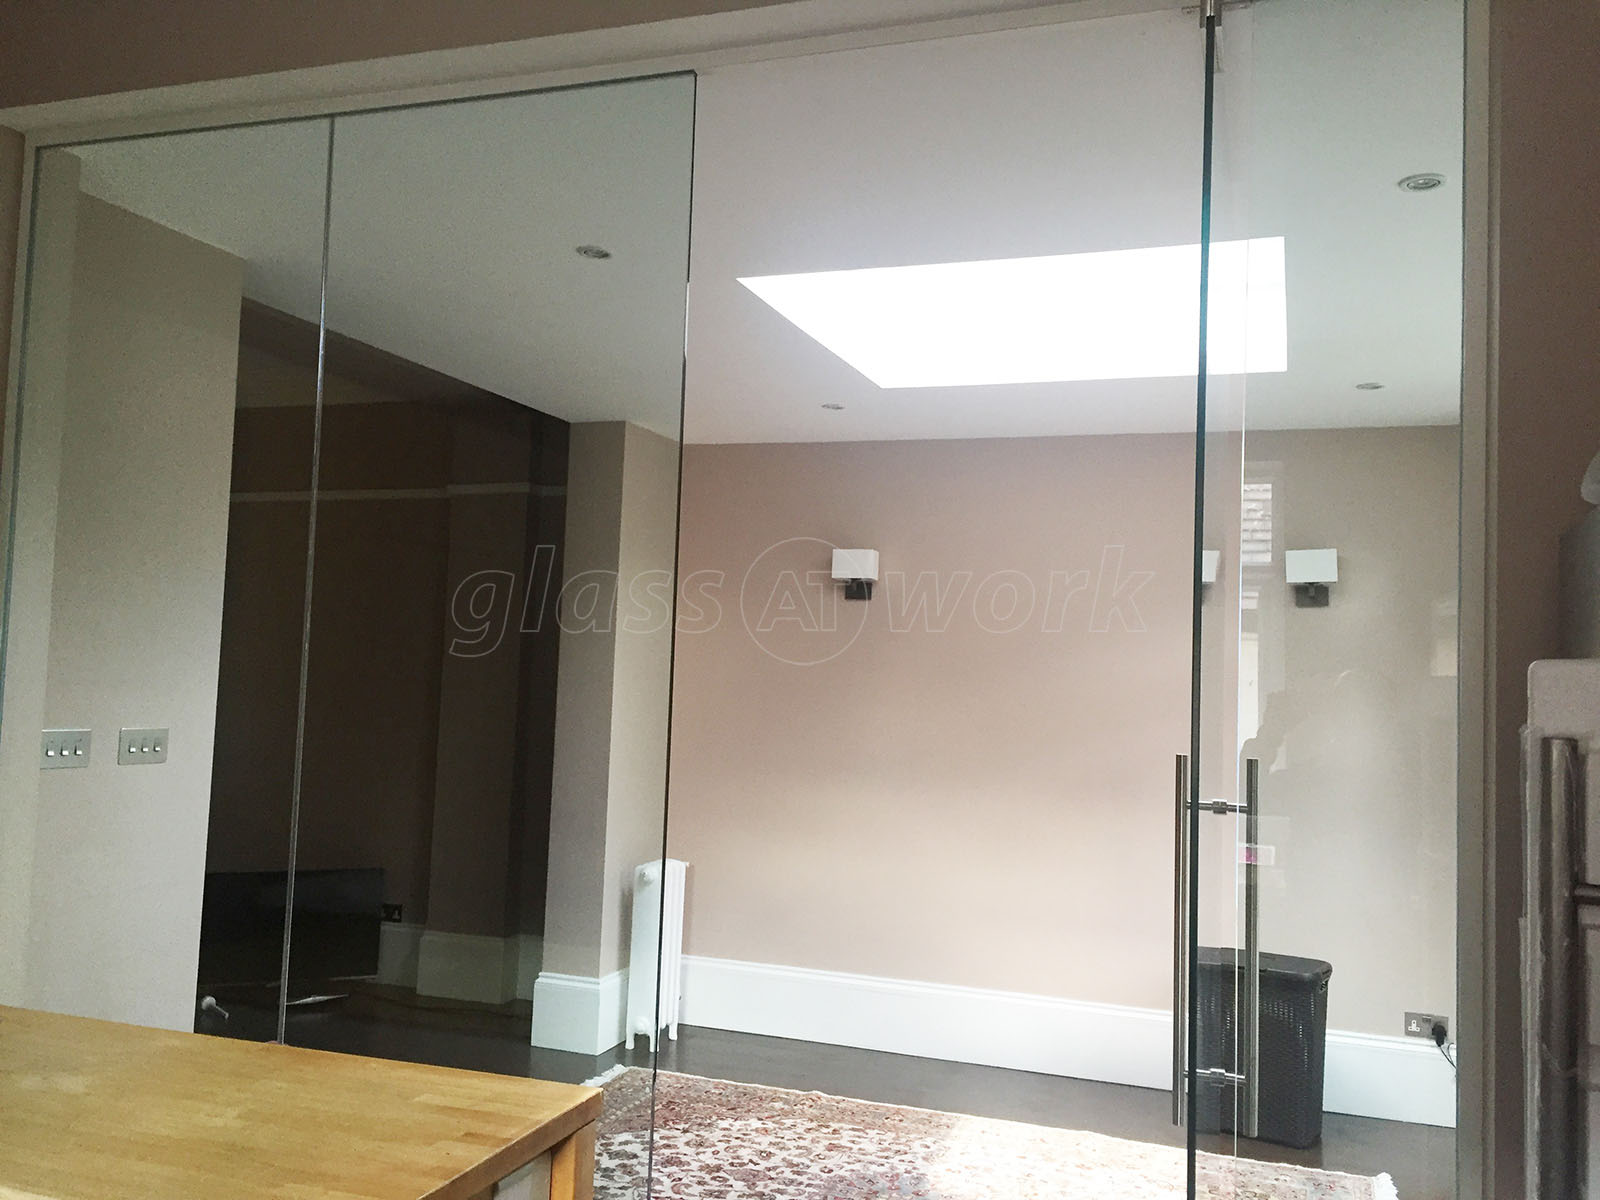 Glass partitioning at domestic property mapesbury london glass partition wall and door - Wall partition images ...